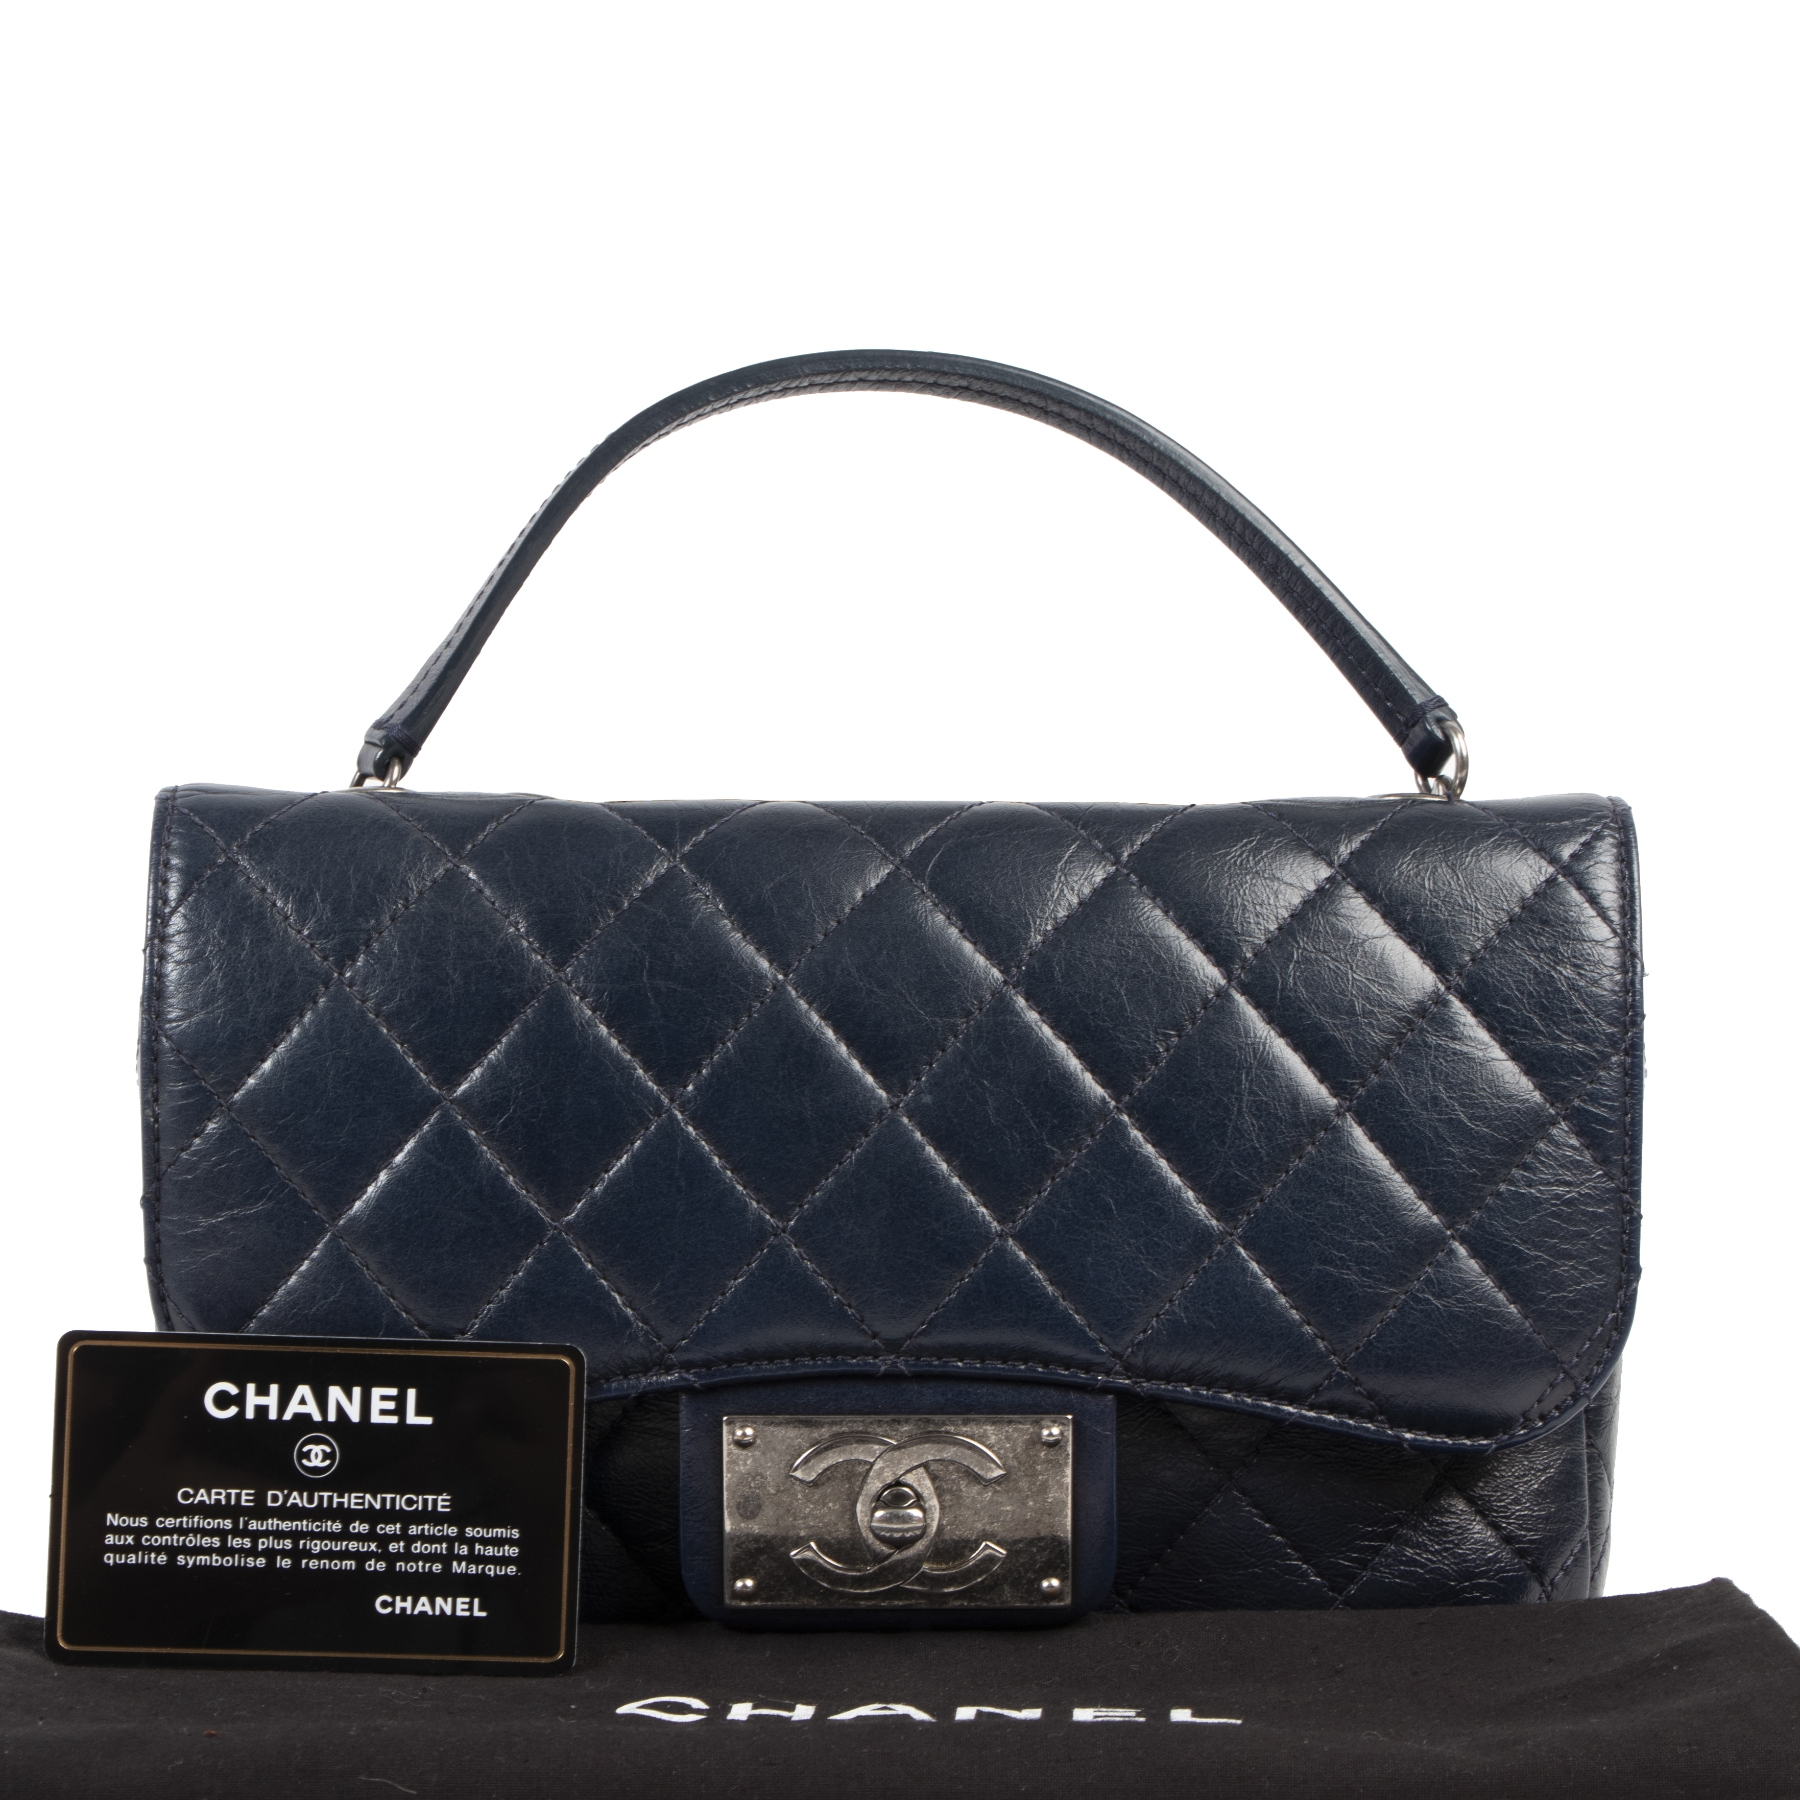 Chanel Dark Blue Small Crinkled Calfskin Flap Bag